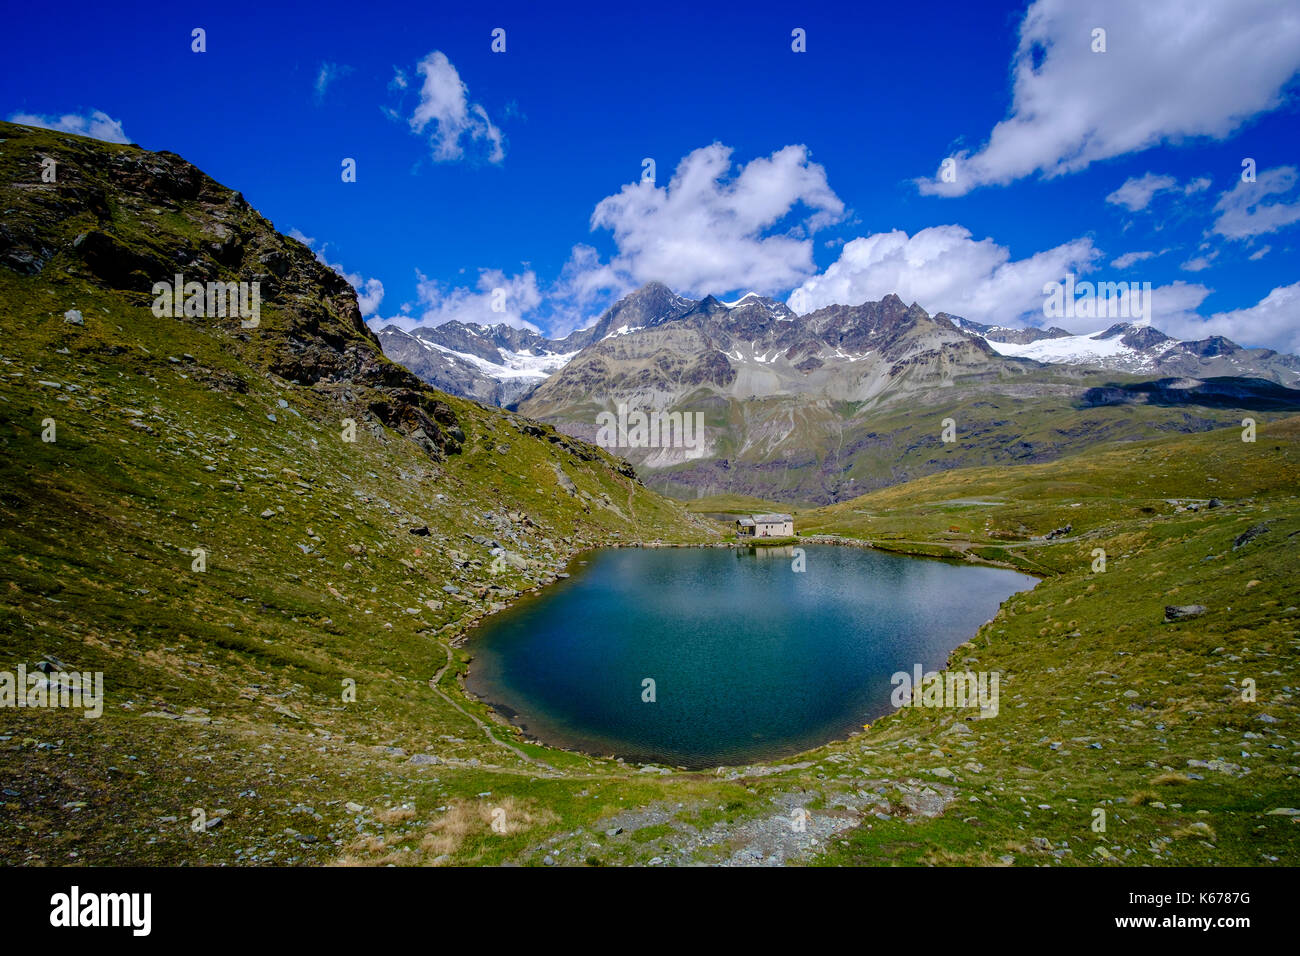 The Lake Black, Schwarzsee with the Chapel Mary of the Snows, Maria zum Schnee, high mountains in the distance - Stock Image